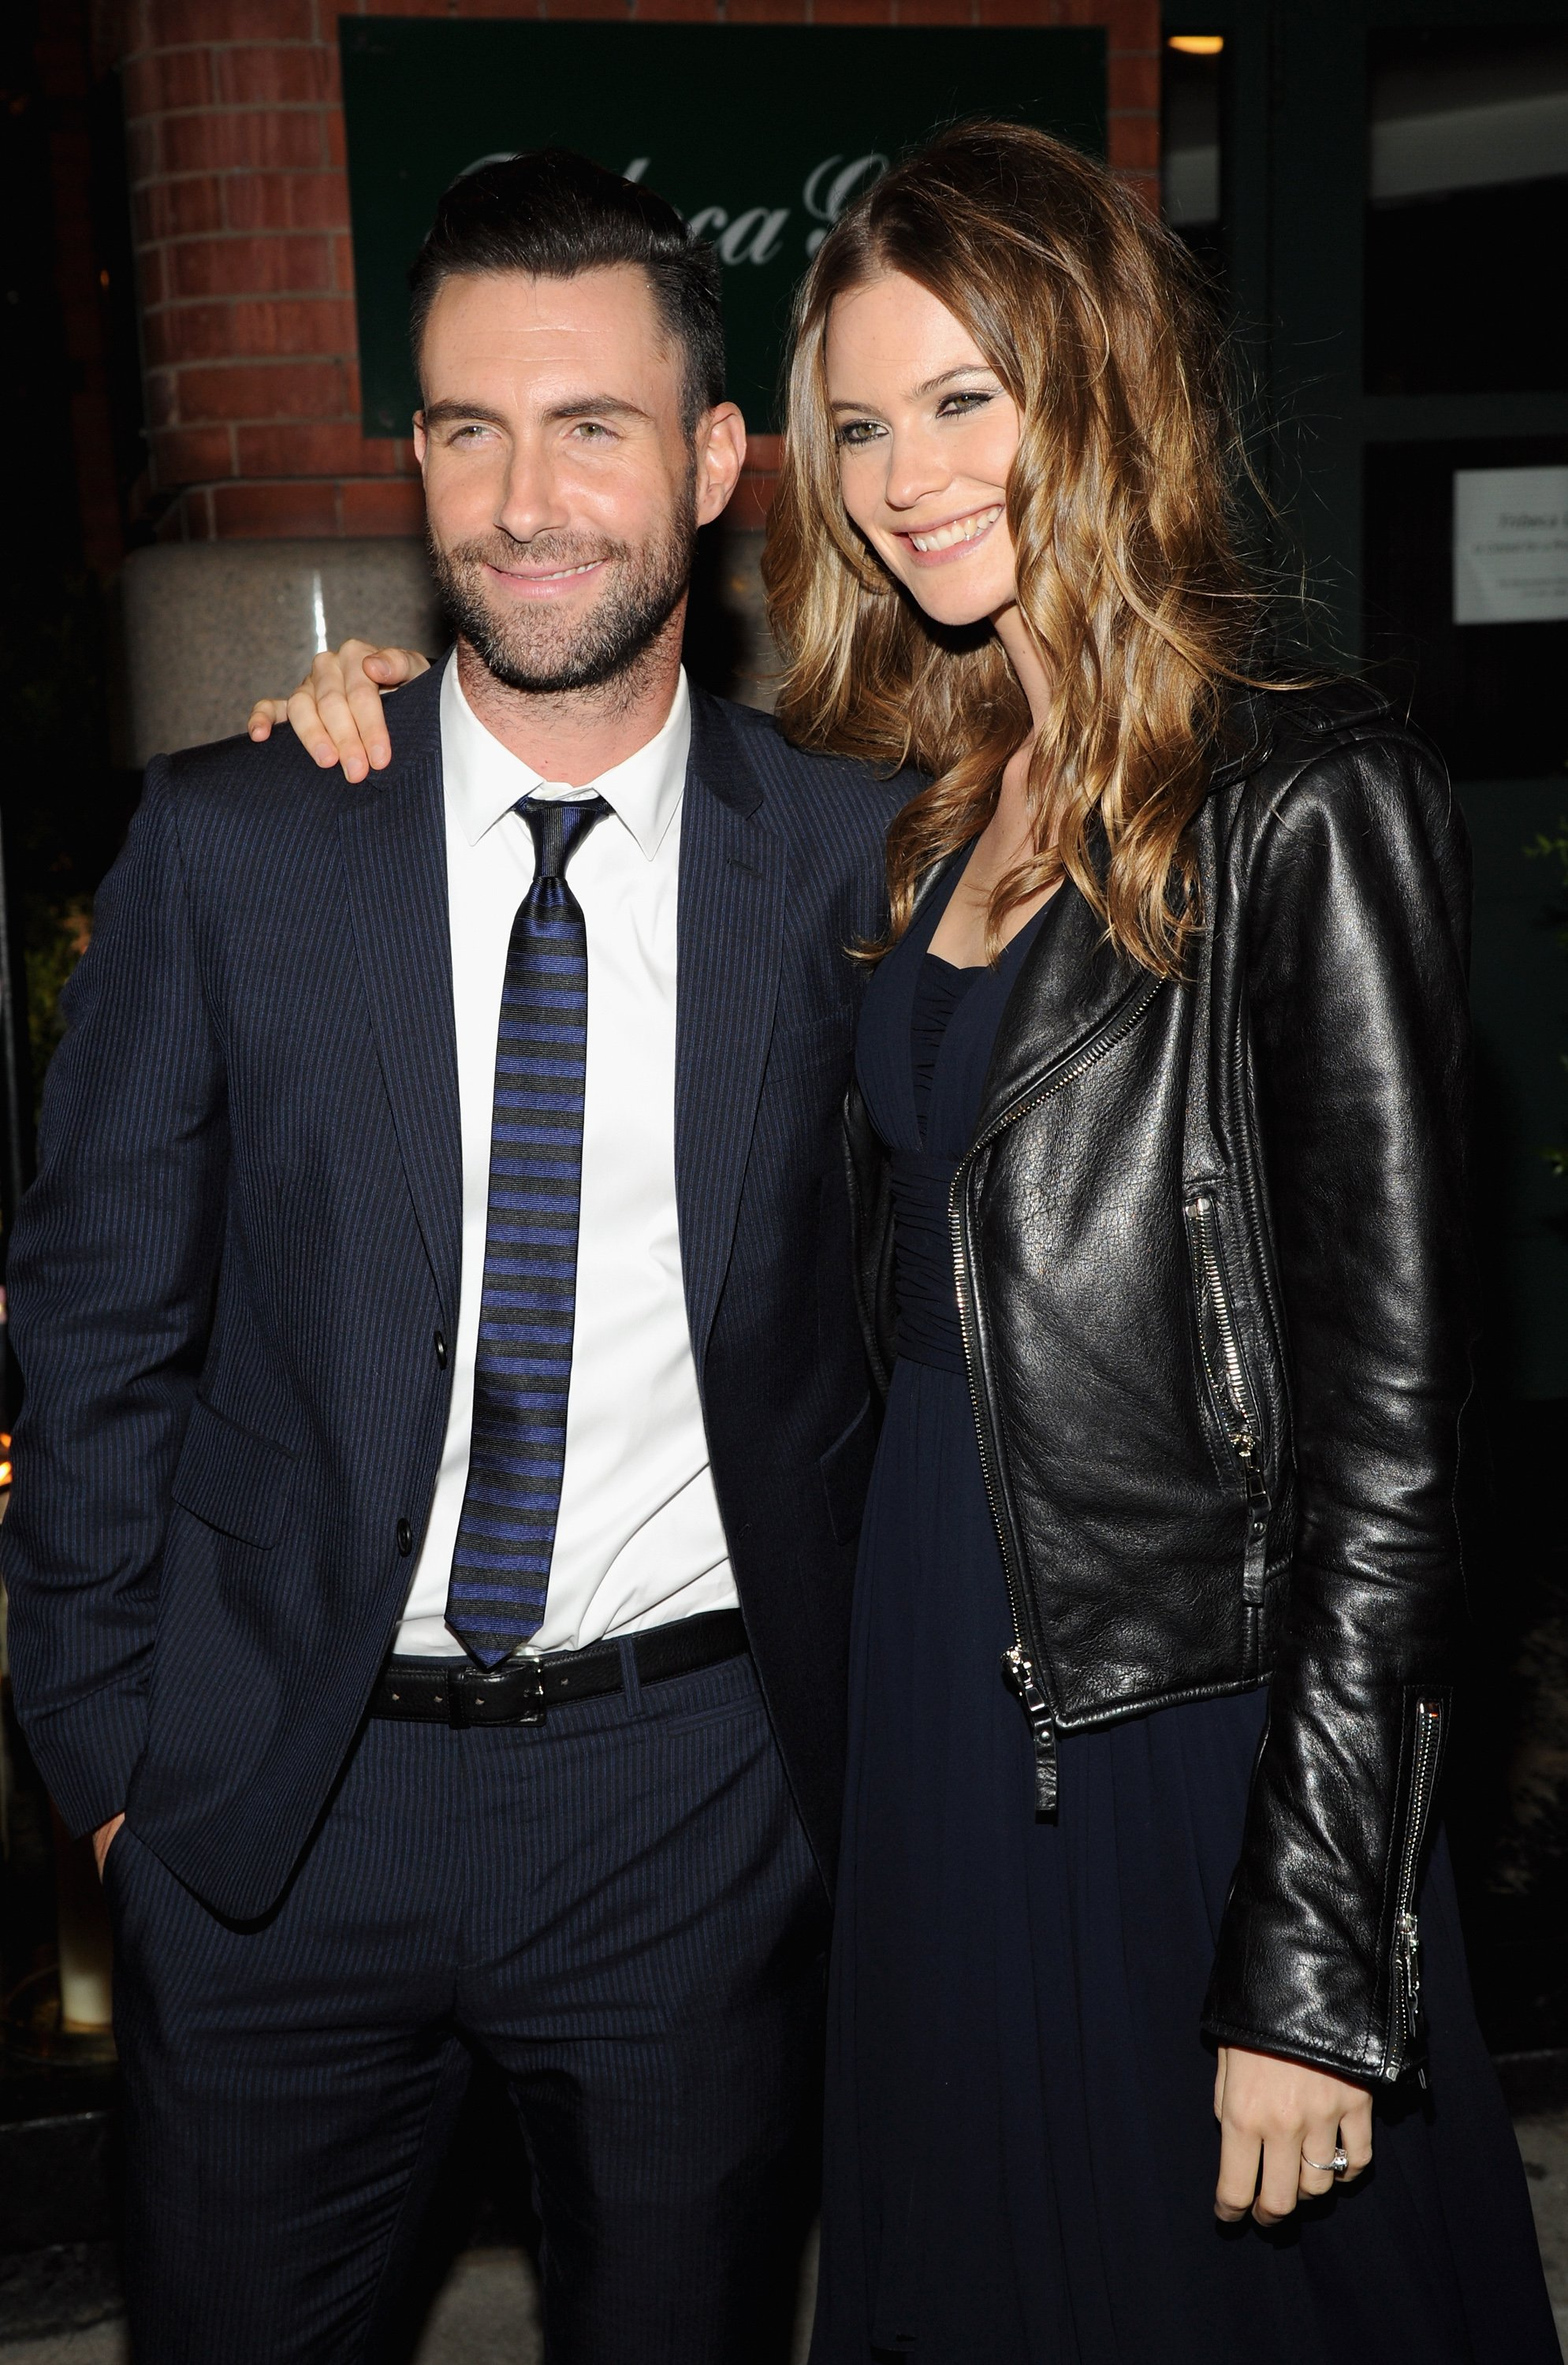 Adam Levine and Behati Prinsloo at the CHANEL Dinner in honor of the 2014 Tribeca Film Festival on April 26, 2014 | Photo: GettyImages